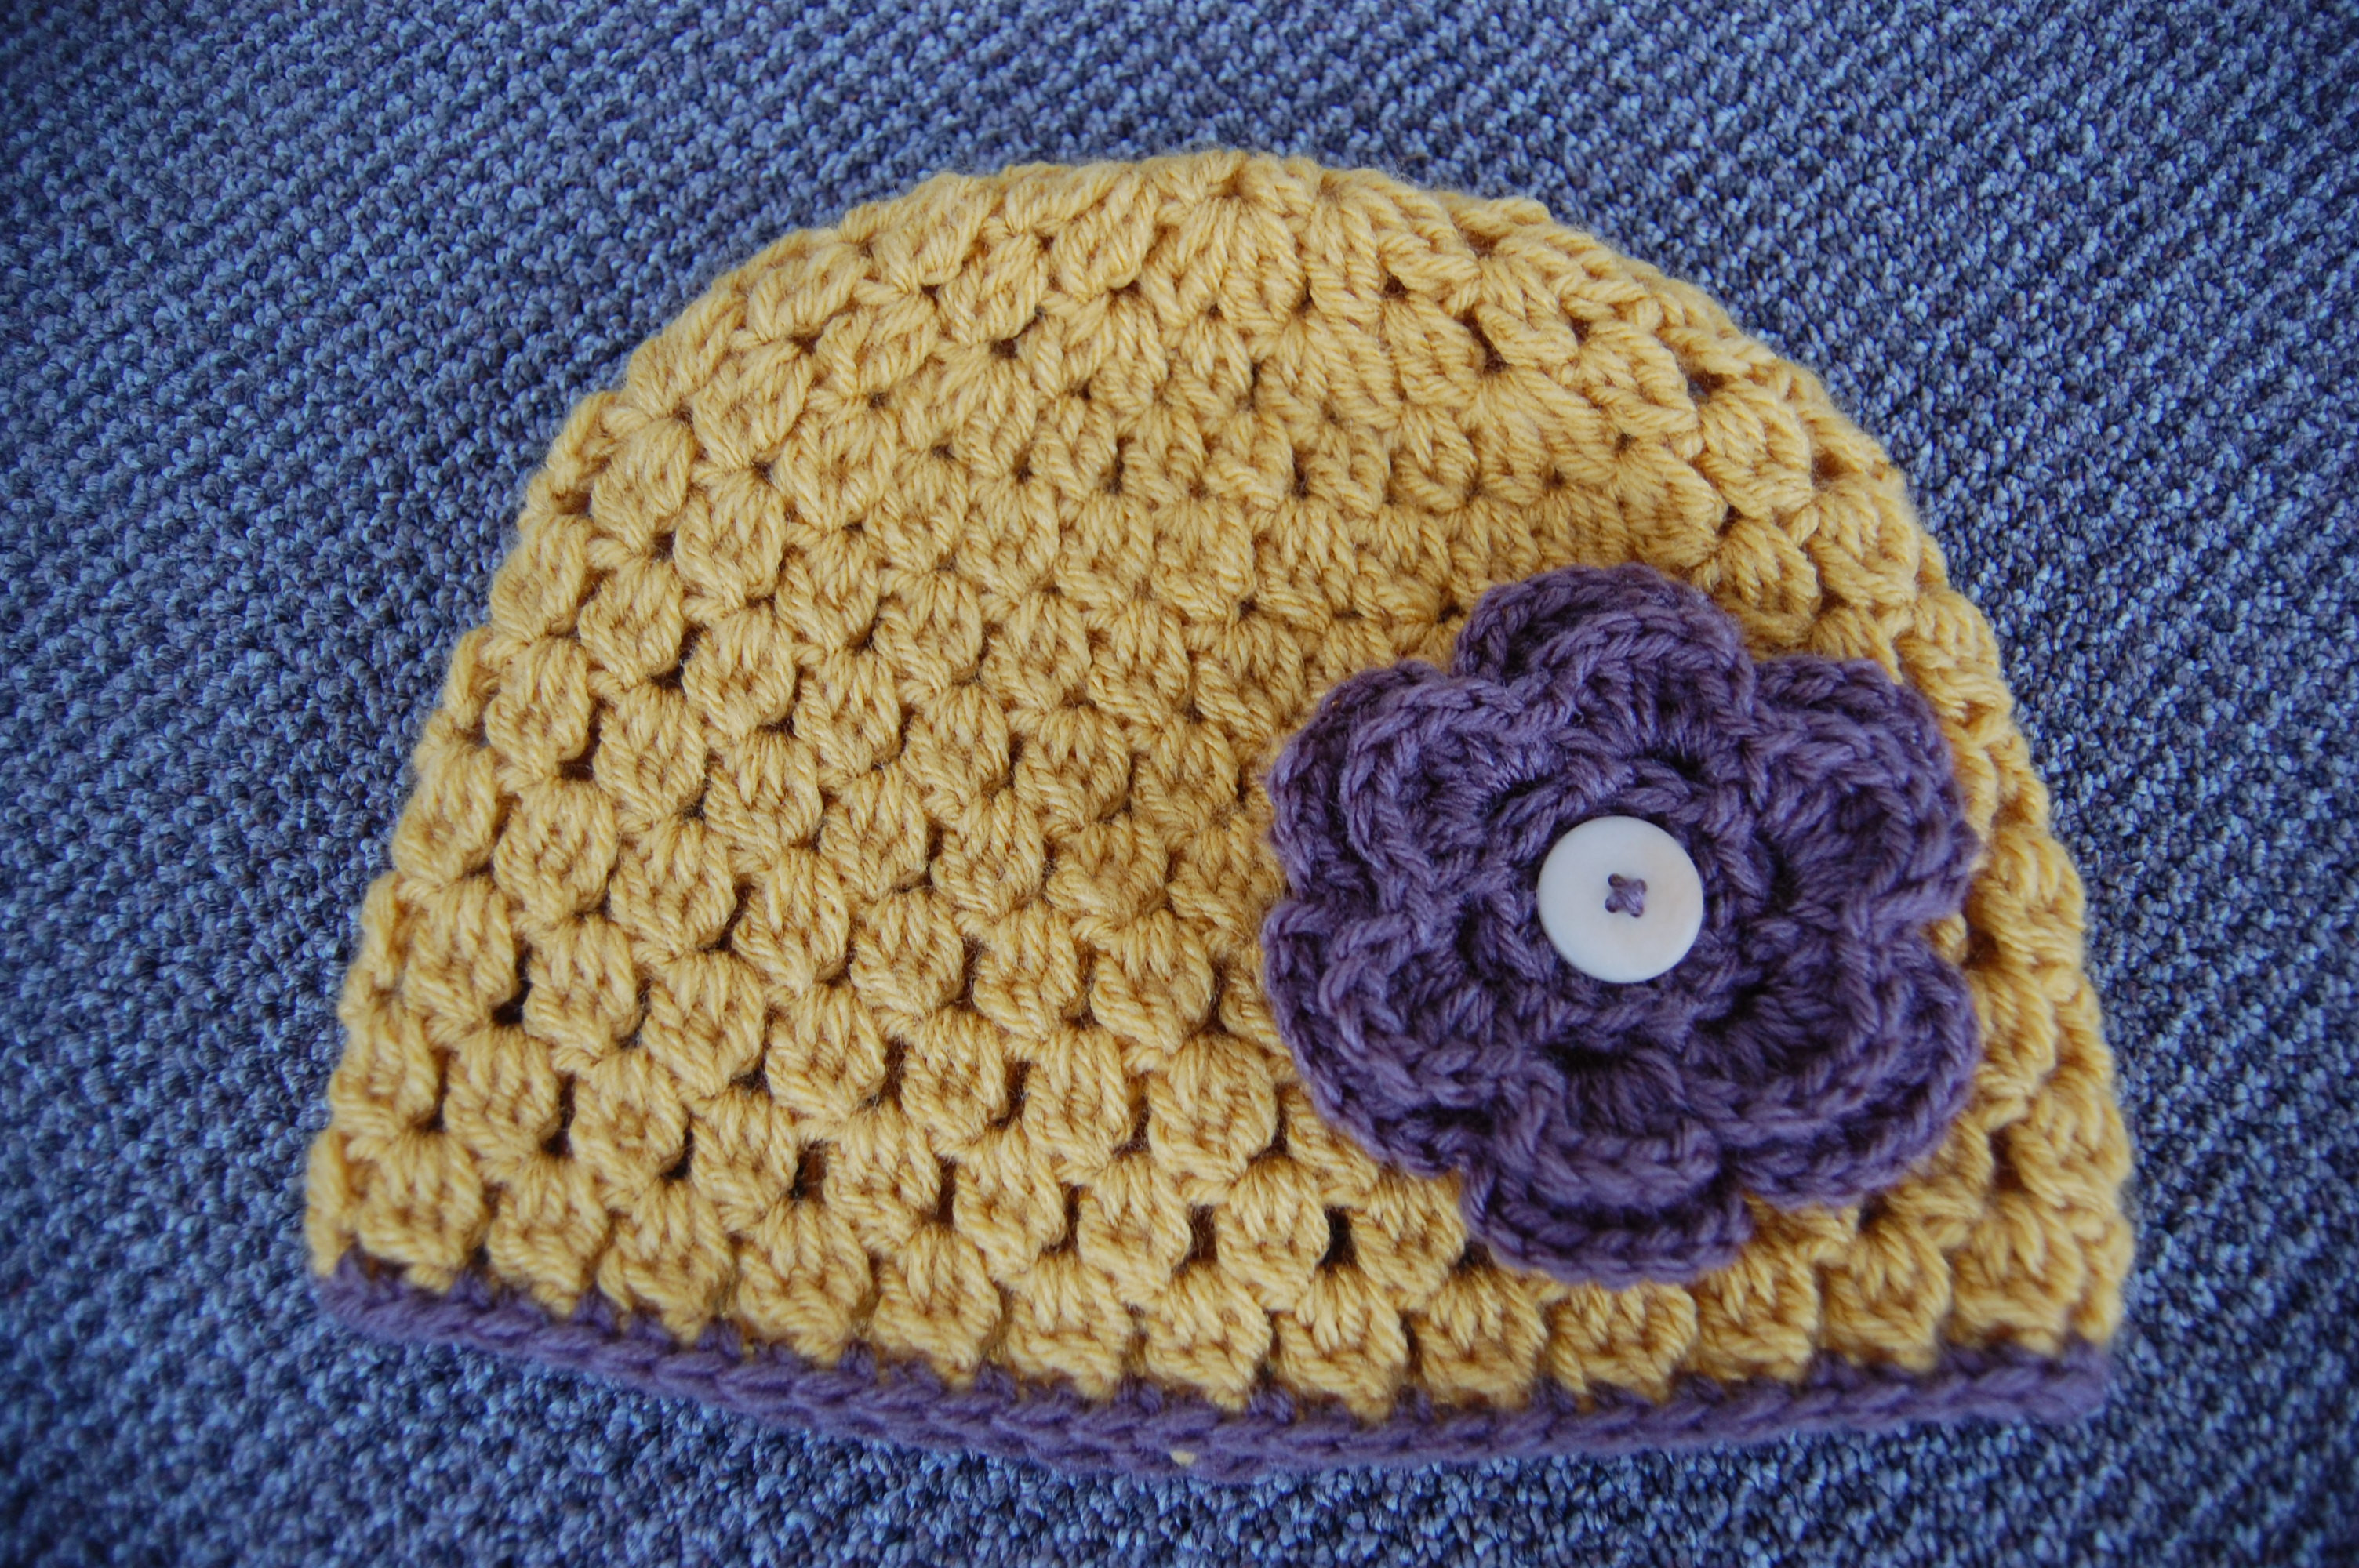 Simple Crochet Patterns New Redheart Yarn Free Patterns for Crocheted Hats – Easy Of Delightful 49 Models Simple Crochet Patterns